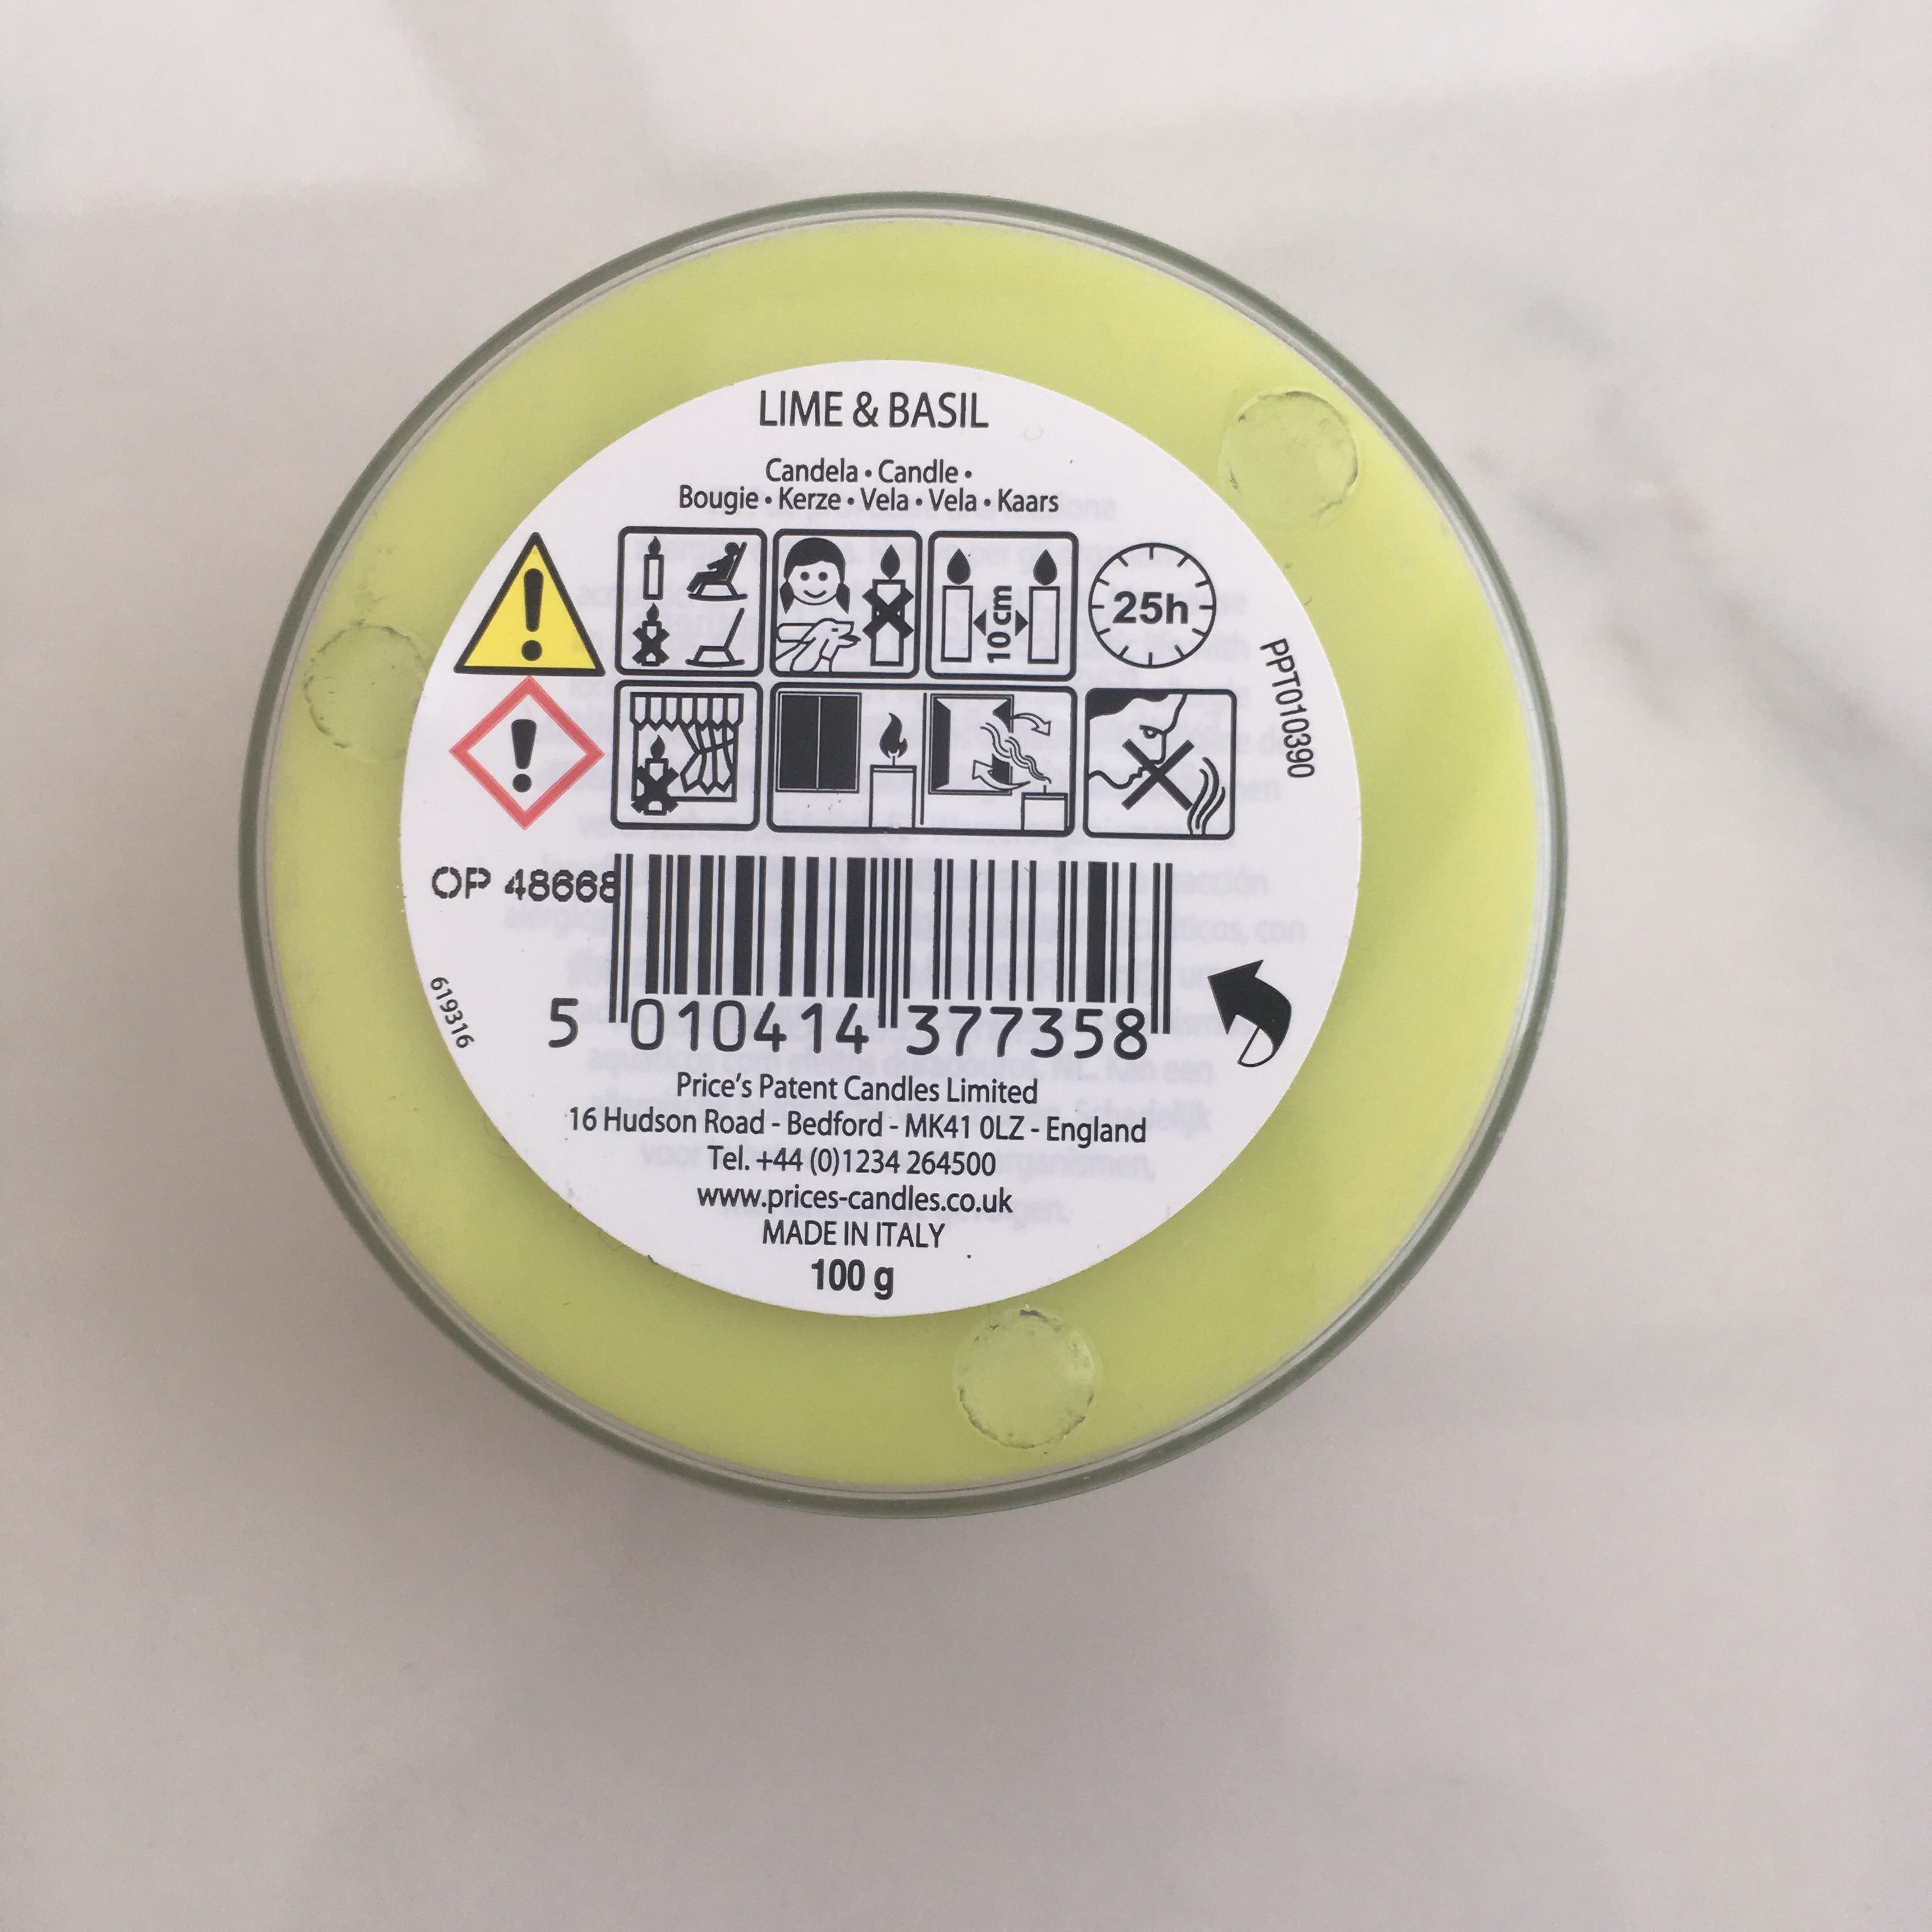 price's scented candle safety information label